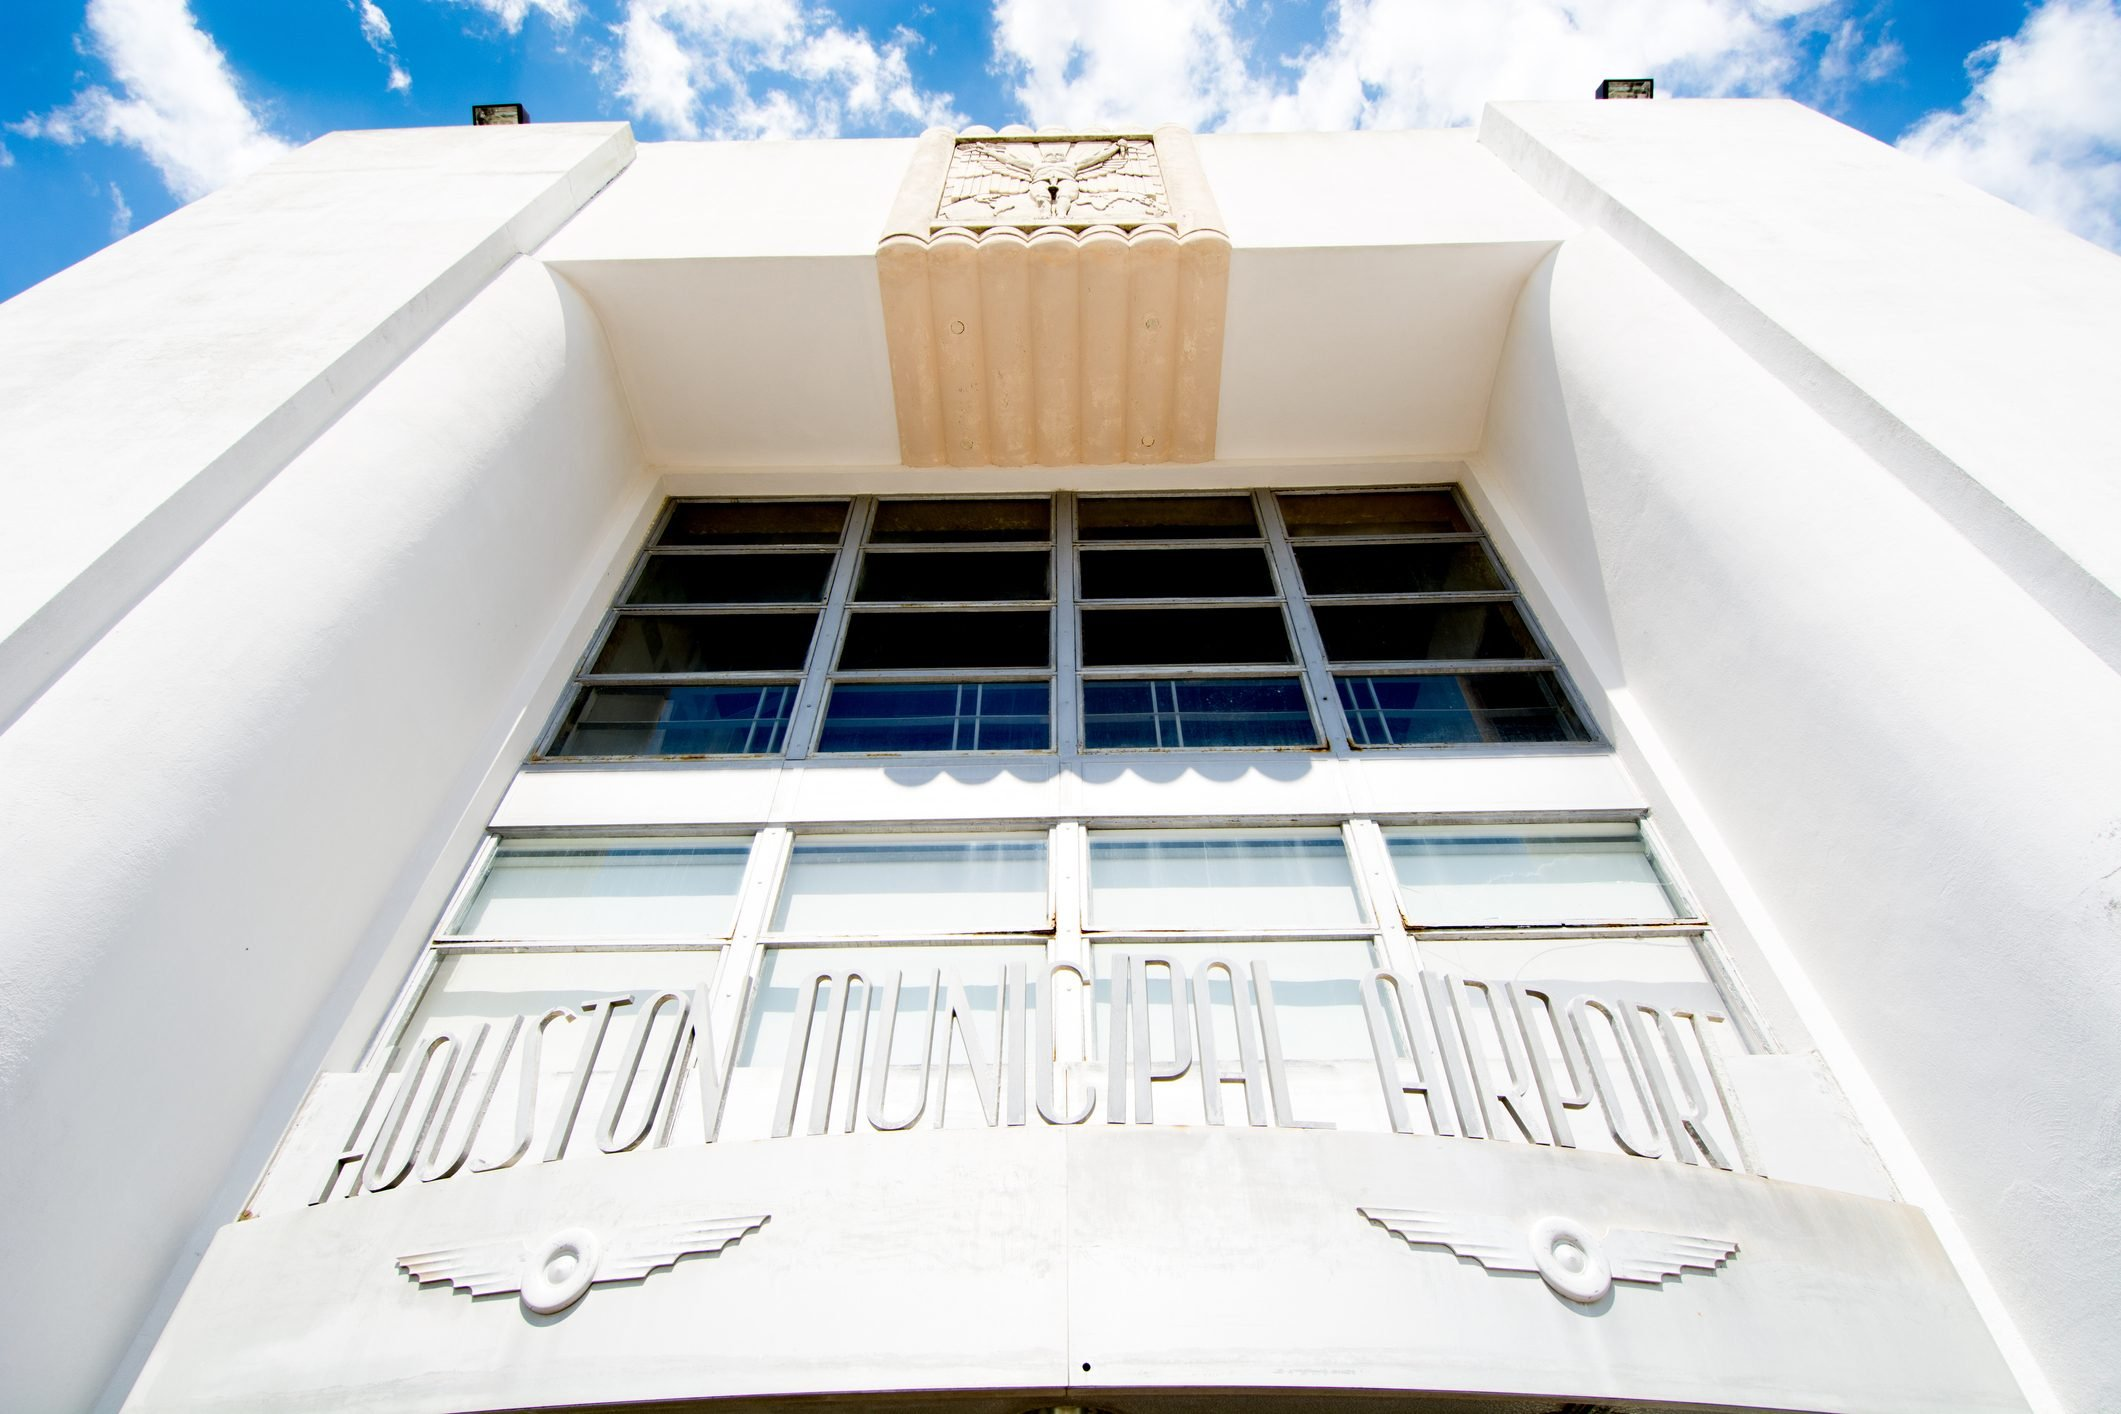 Entrance to Houston's 1940 Air Terminal